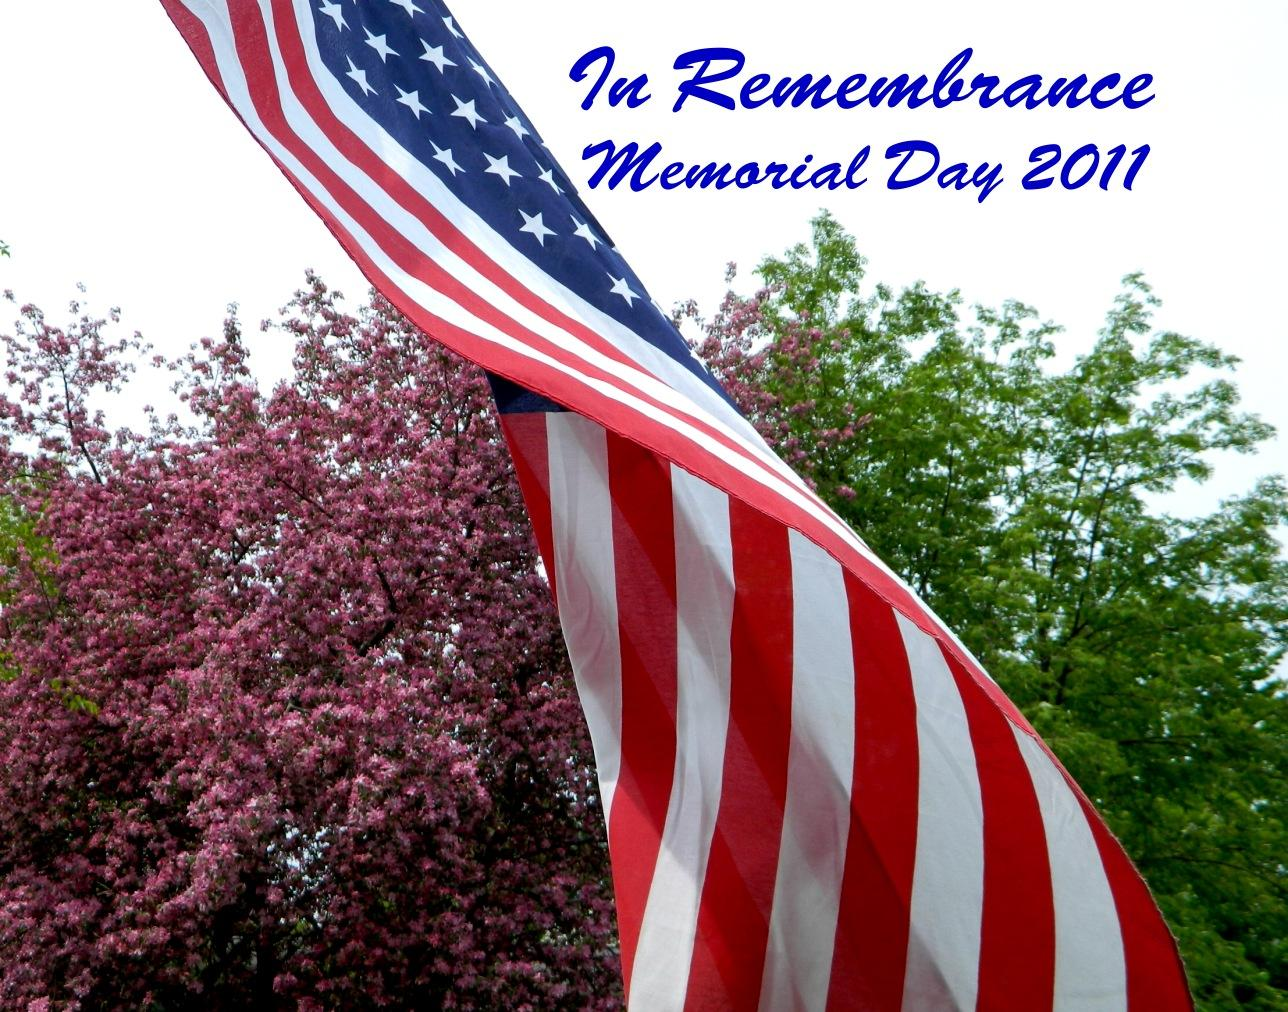 In Remembrance Memorial Day 2011